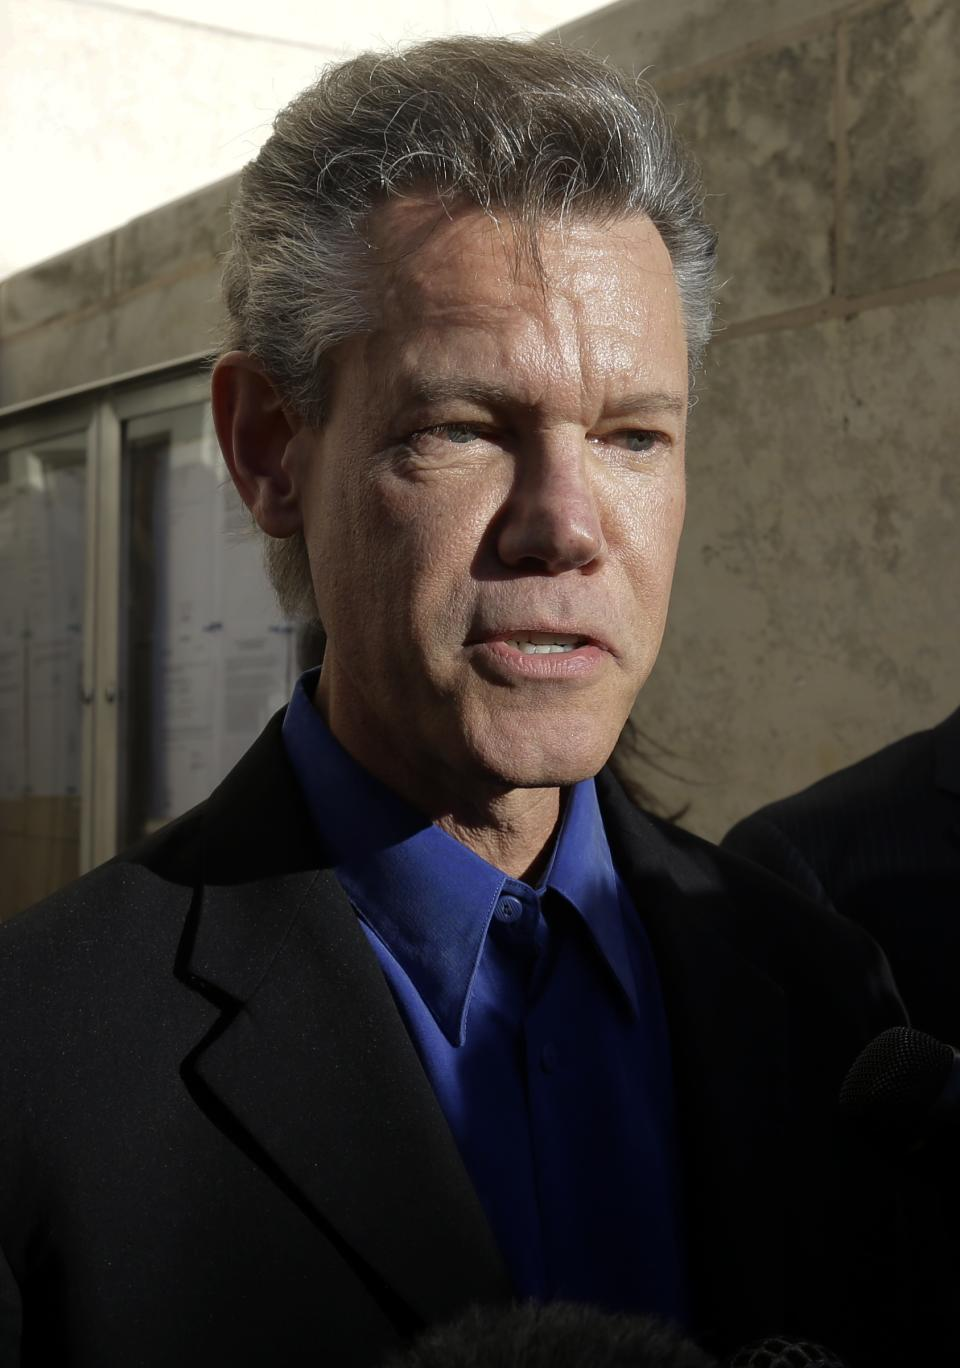 FILE - In this Jan. 31, 2013 file photo, country star Randy Travis makes comments after exiting the Grayson County Courthouse, in Sherman, Texas. Travis has filed a lawsuit to prevent two state agencies from releasing a patrol car video of his 2012 DWI arrest in North Texas. (AP Photo/Tony Gutierrez, File)